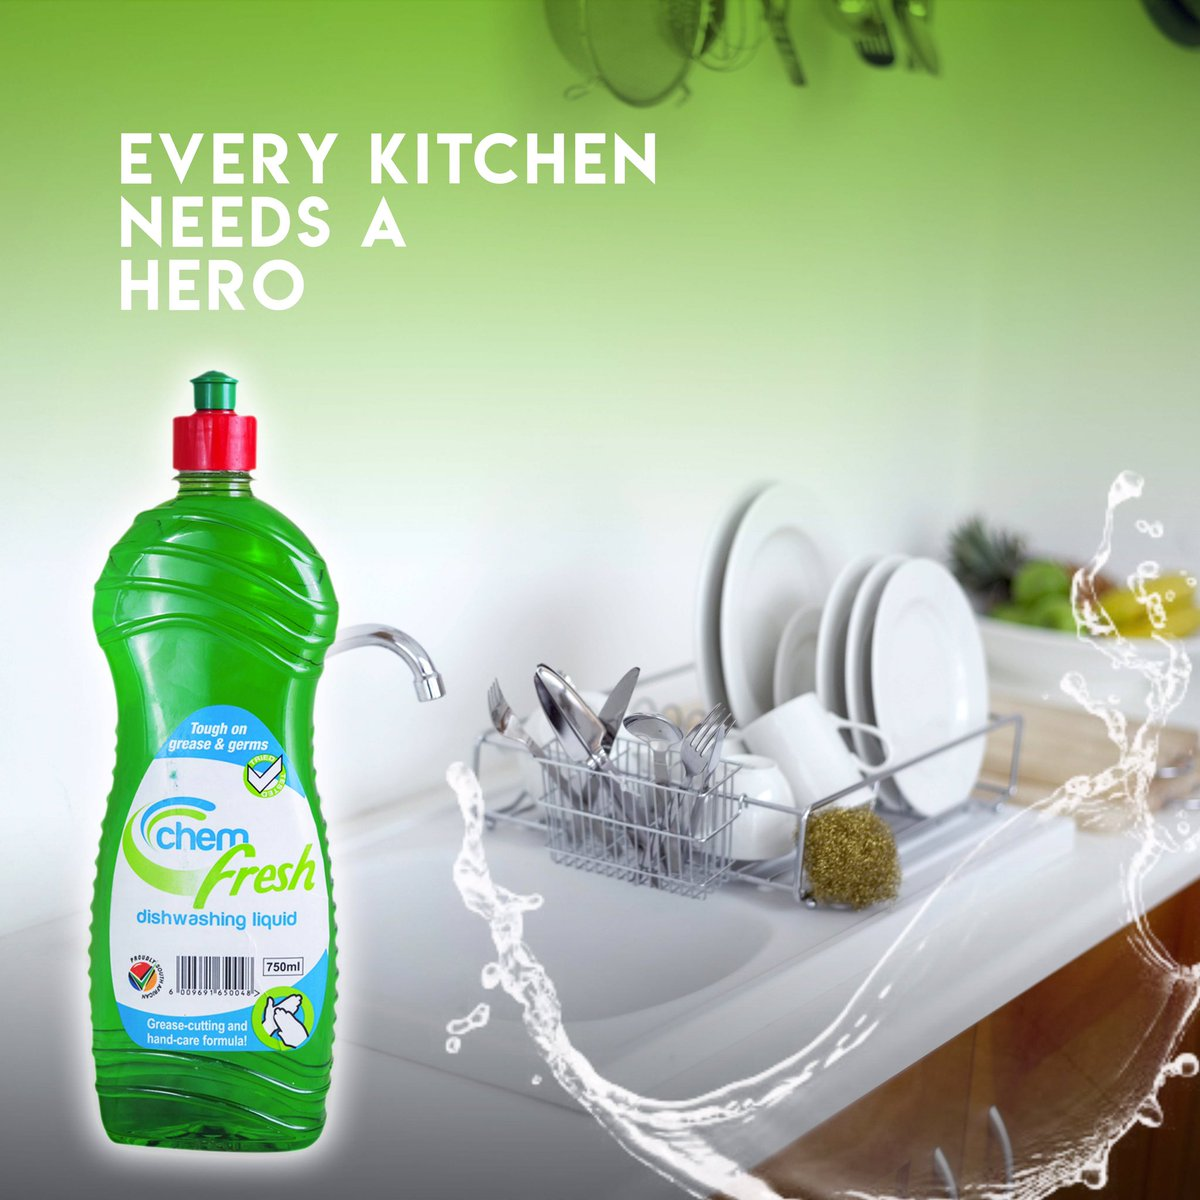 Everybody in life needs a hero just like every kitchen needs Chemfresh. Chemfresh is very tough on grease & gems.